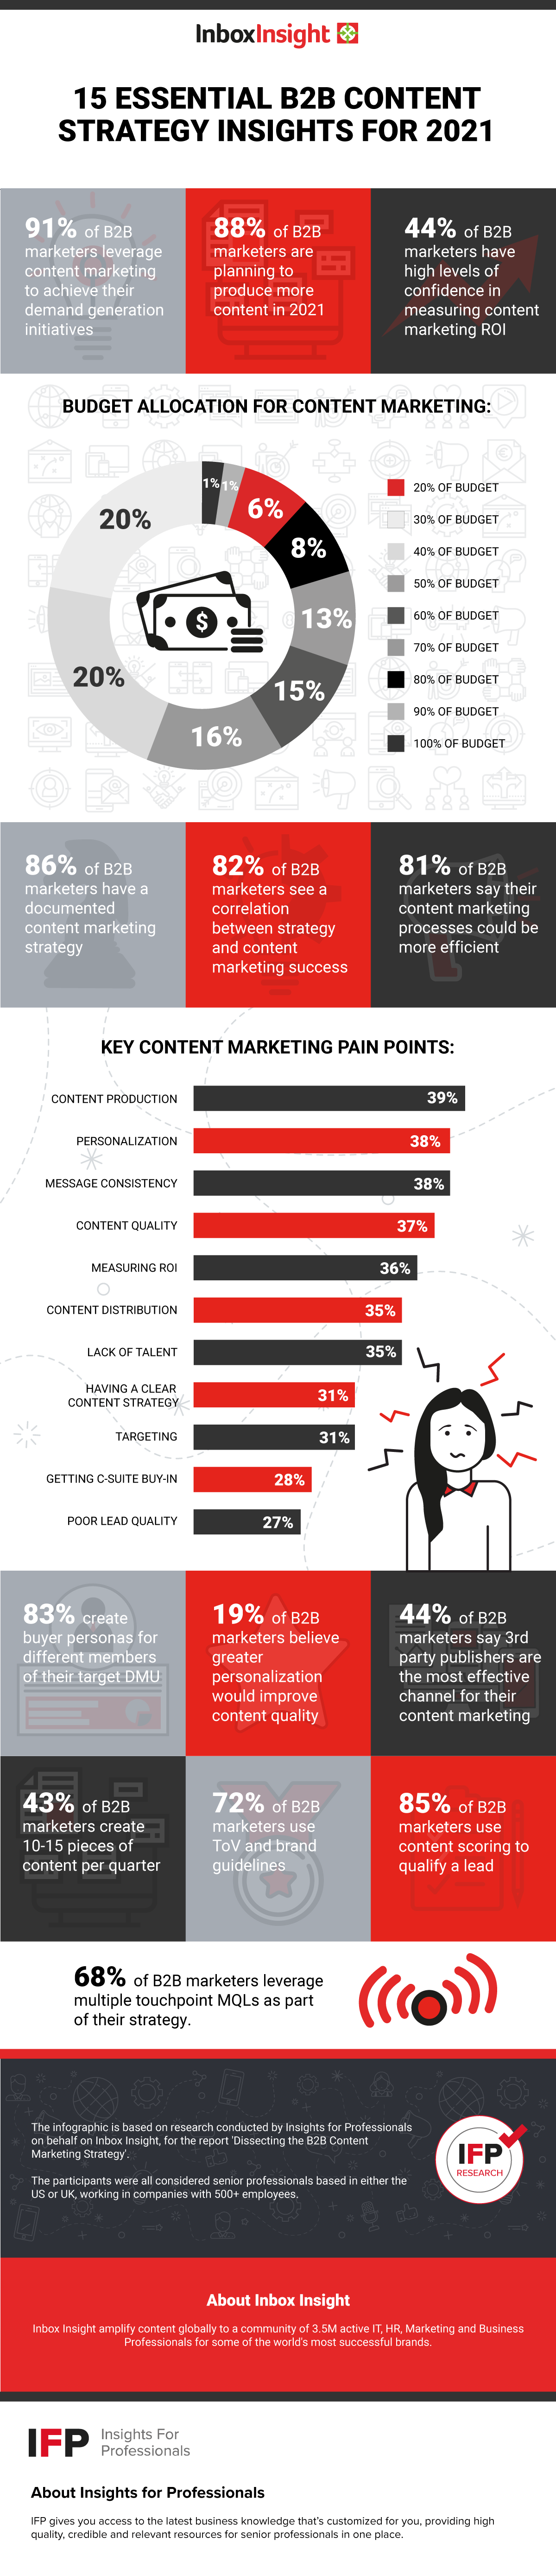 B2B Content Strategy Insights